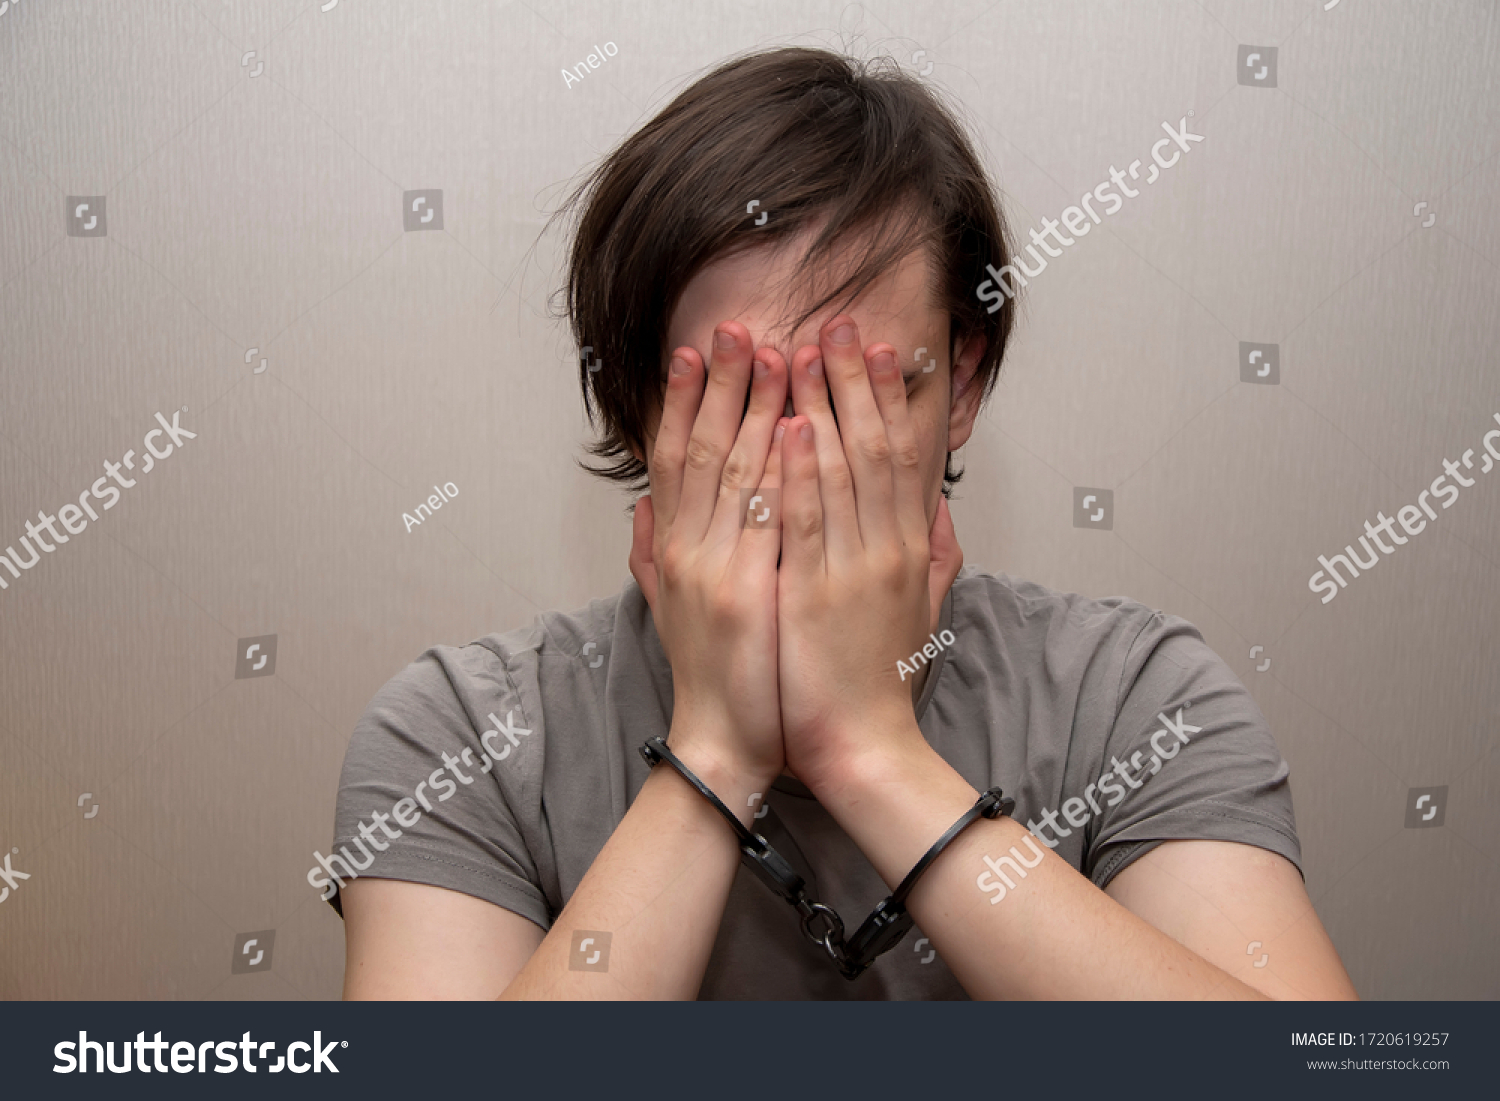 Portrait of a teenager in handcuffs covering his face with his hands on a gray background, medium plan. Juvenile delinquent, criminal liability of minors. Members of youth criminal groups and gangs. #1720619257